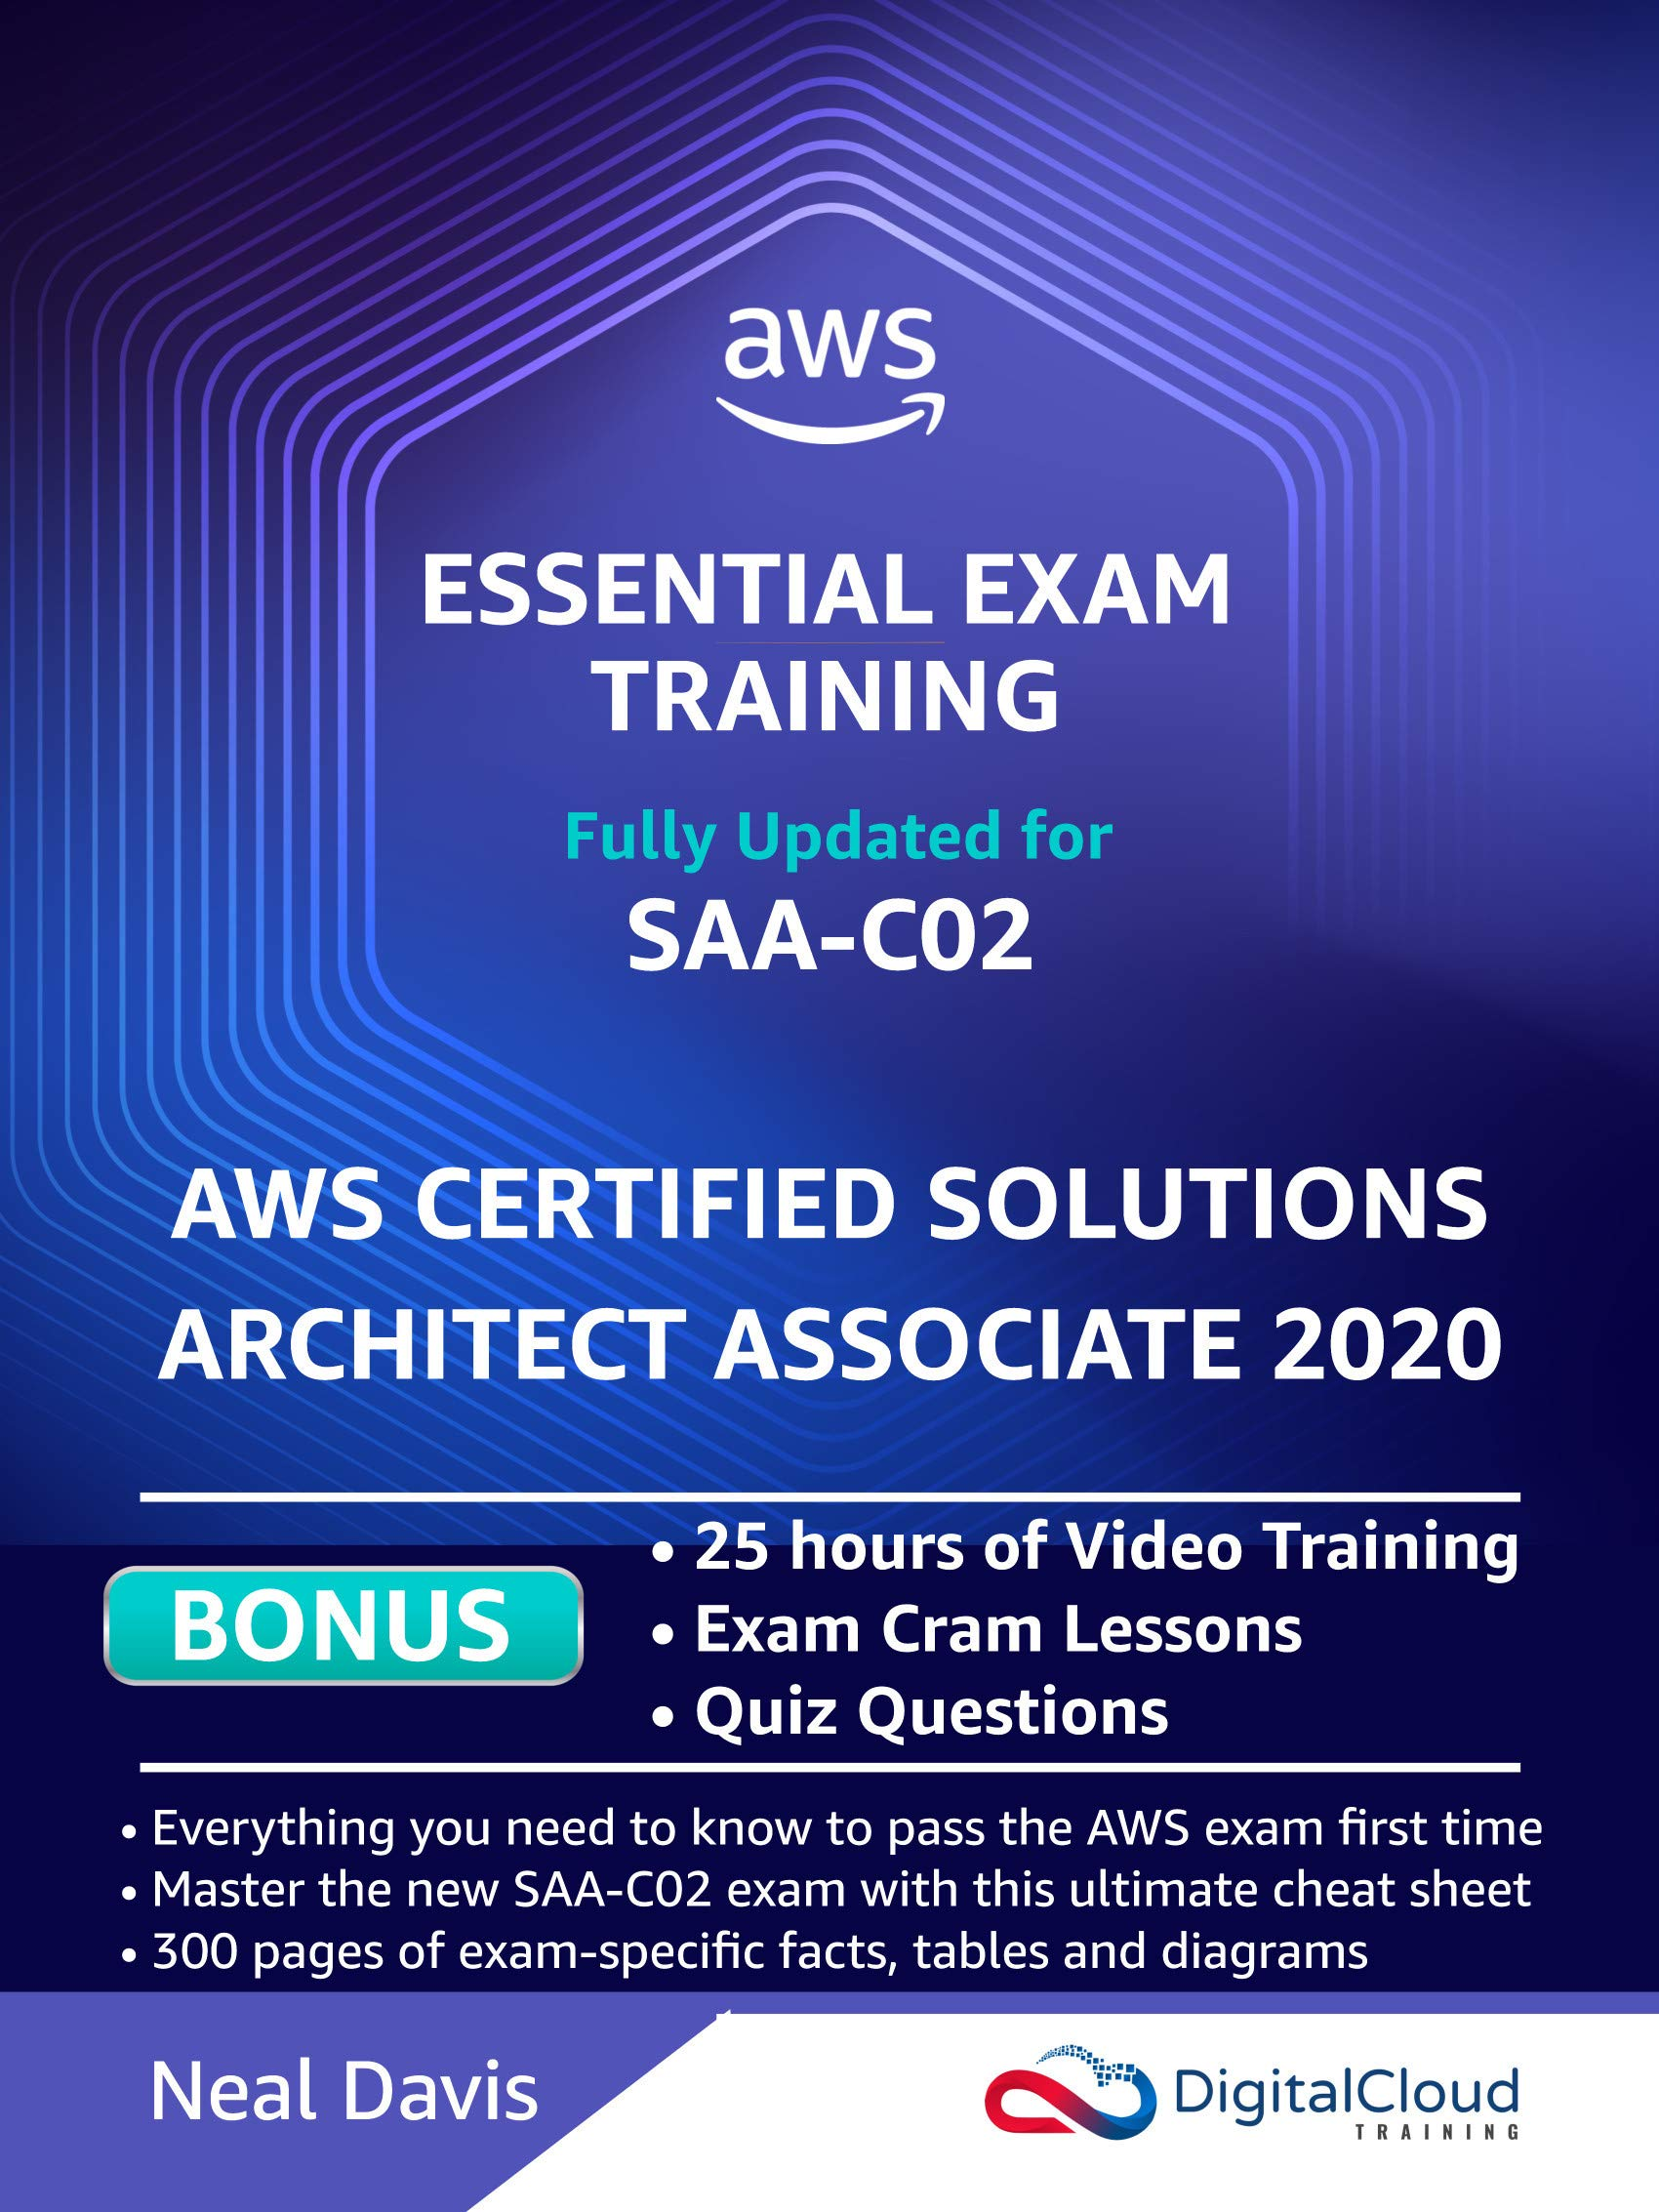 AWS Certified Solutions Architect Associate - Essential Exam Training SAA-C02: BONUS: In-depth Video Course with 25h of guided Hands-on Lectures, Exam Cram Lessons and Quiz Questions